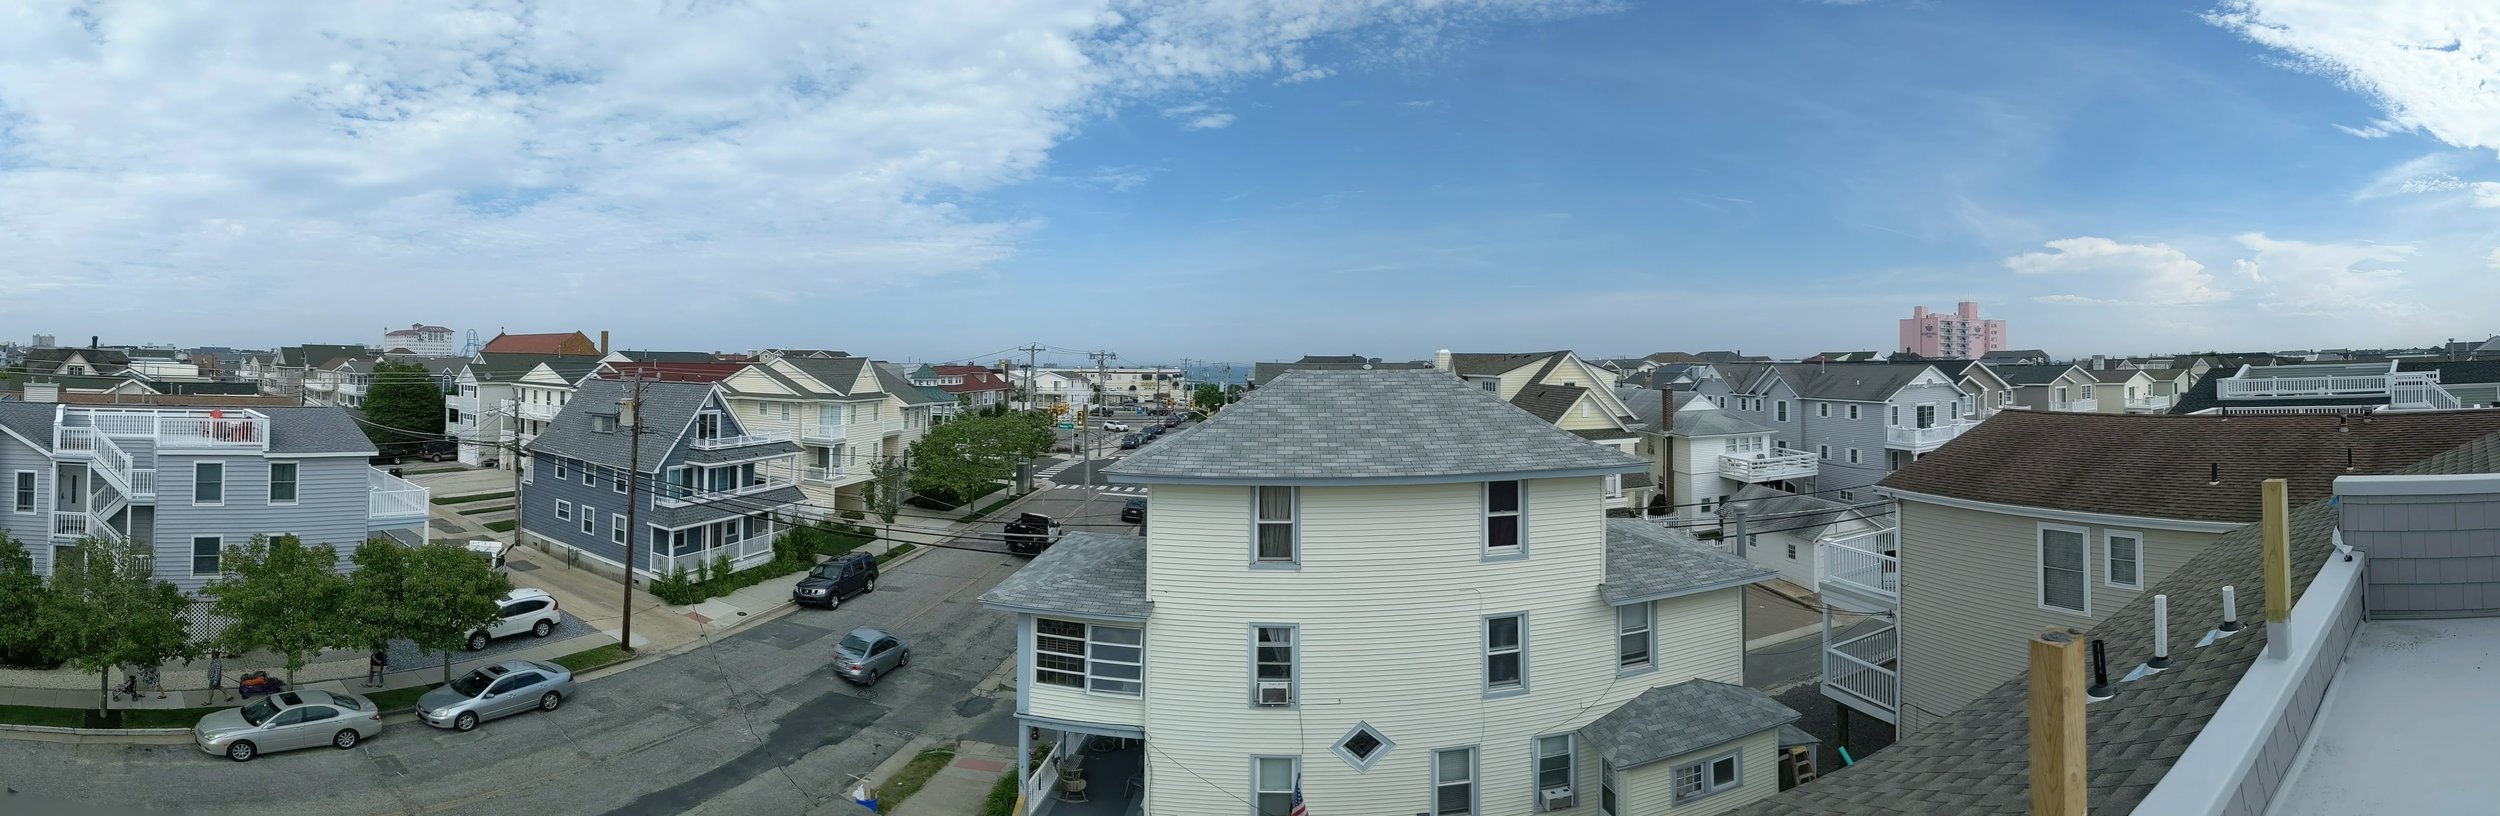 1401 Central Rooftop Panorama.jpg